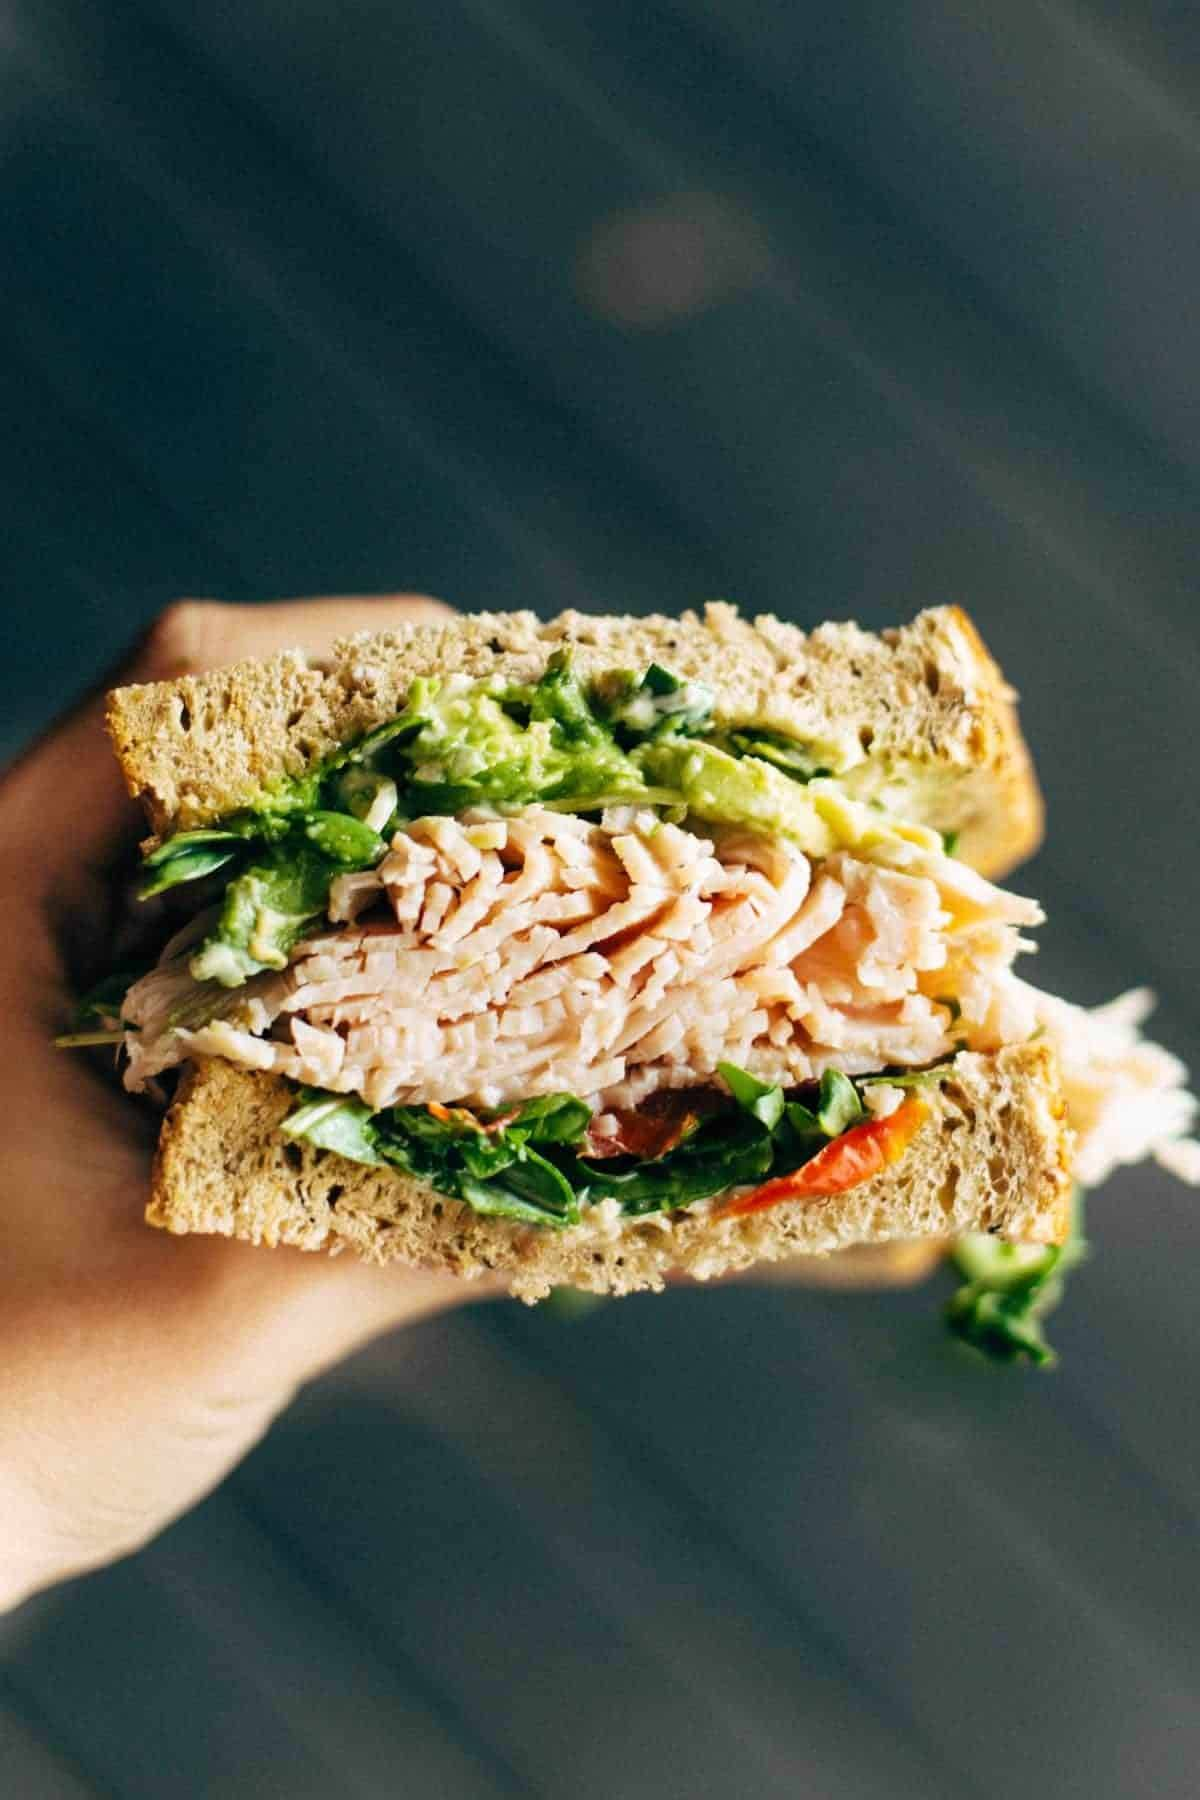 Hand holding a sandwich with lettuce and meat.